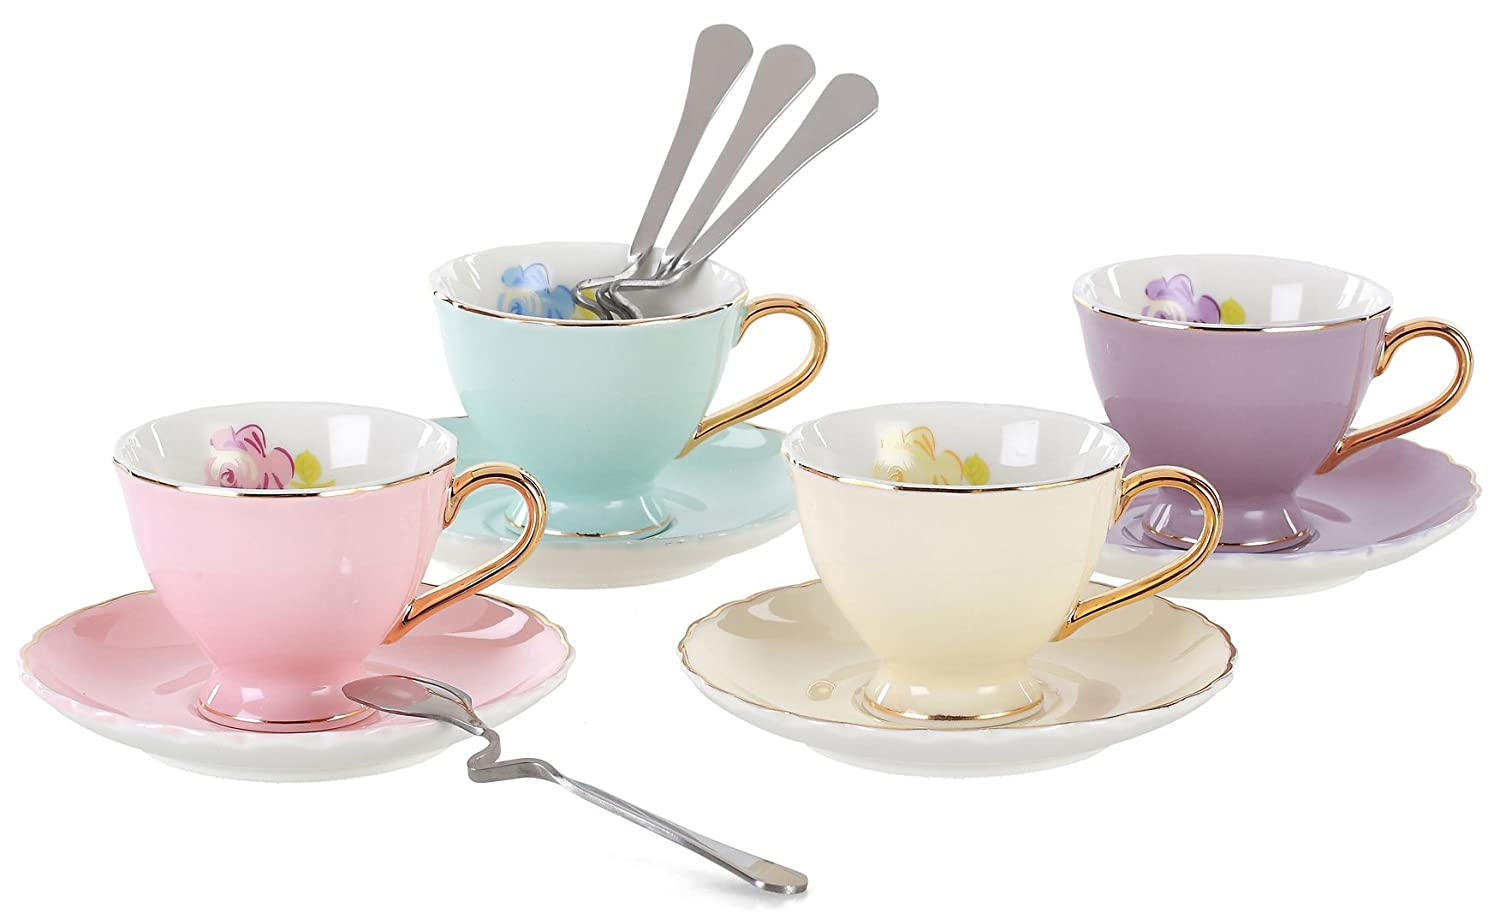 Jusalpha Porcelain Coffee Bar Espresso SMALL Cups and Saucers Set, 3-Ounce FD-TCS02-4COLOR (3 OZ) SYNCHKG083796